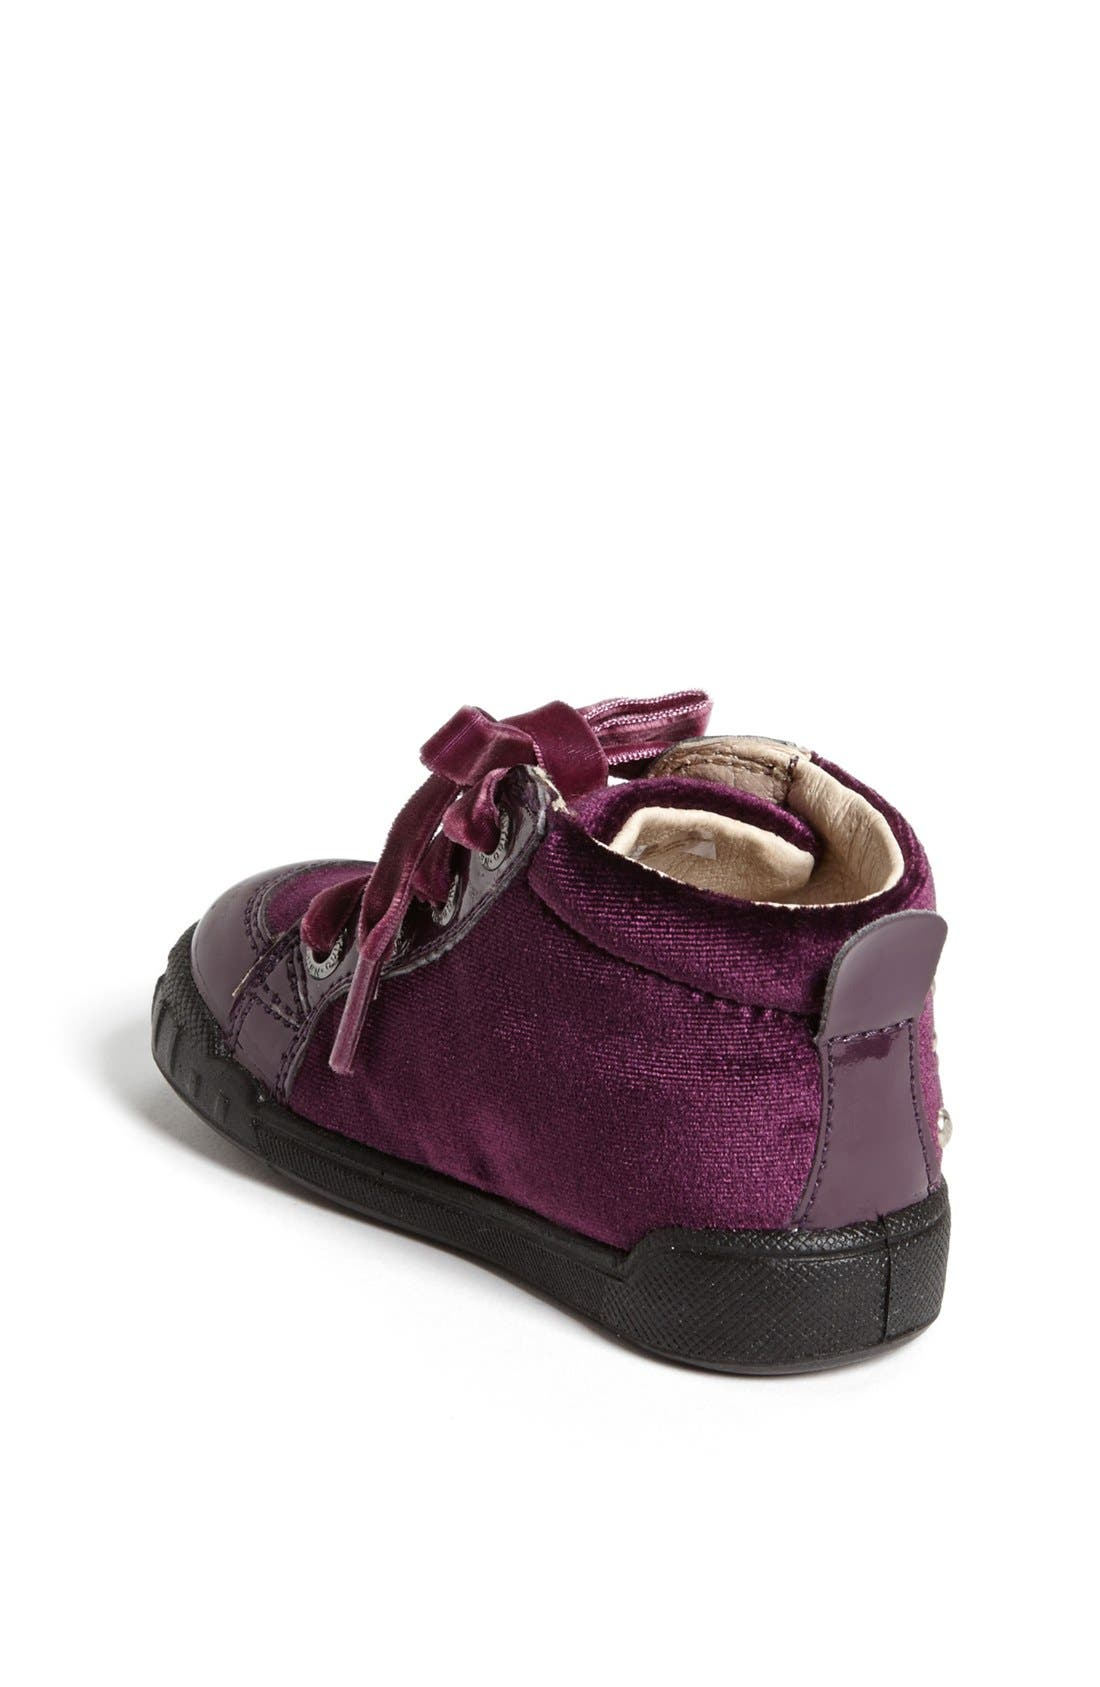 Alternate Image 2  - Naturino 'Falcotto - 1203' Sneaker (Baby & Walker)